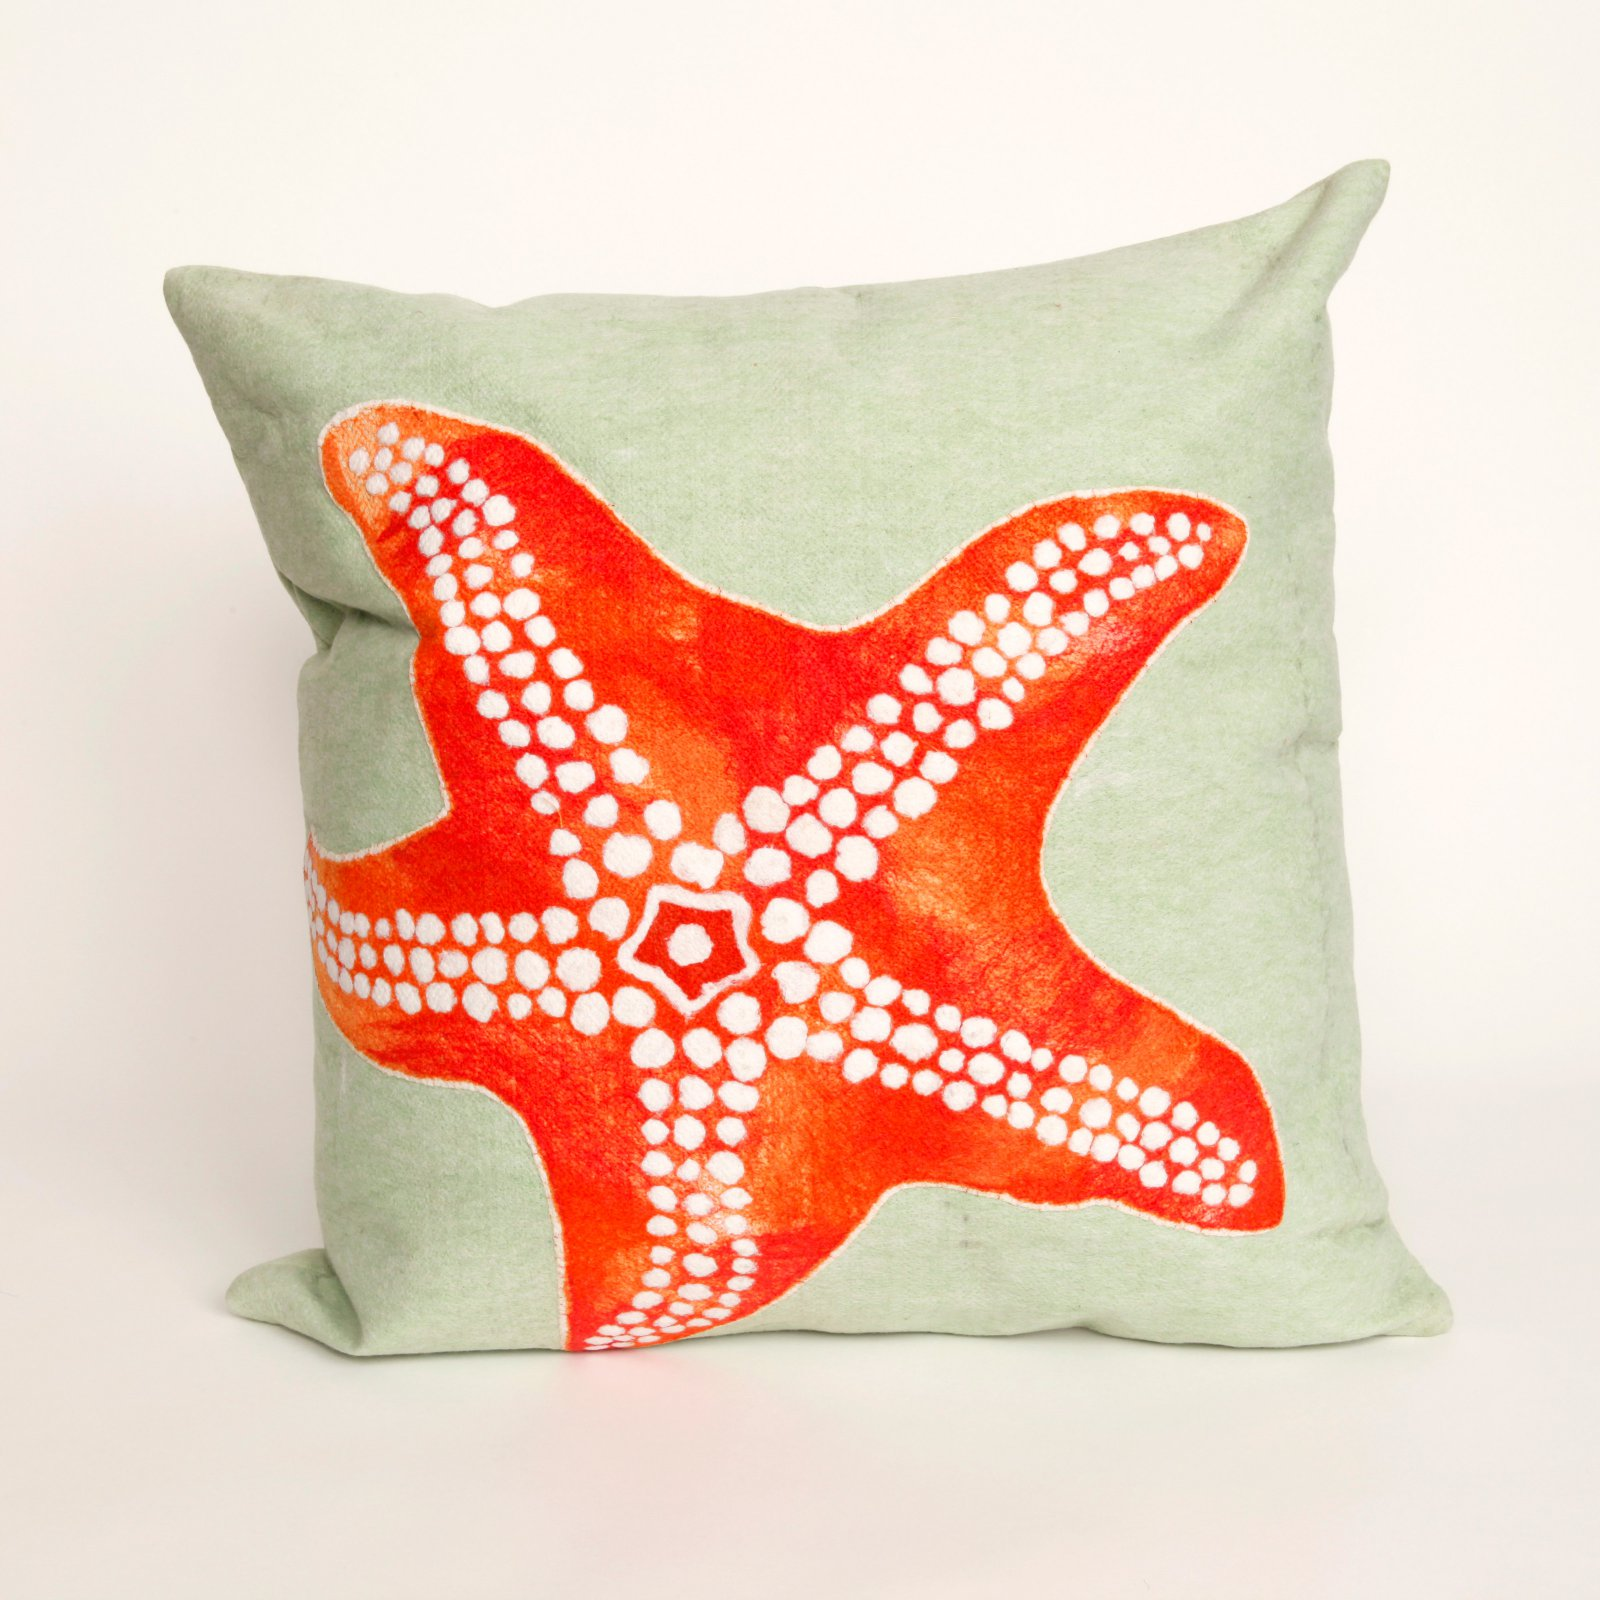 Liora Manne Star Fish Indoor / Outdoor Throw Pillow